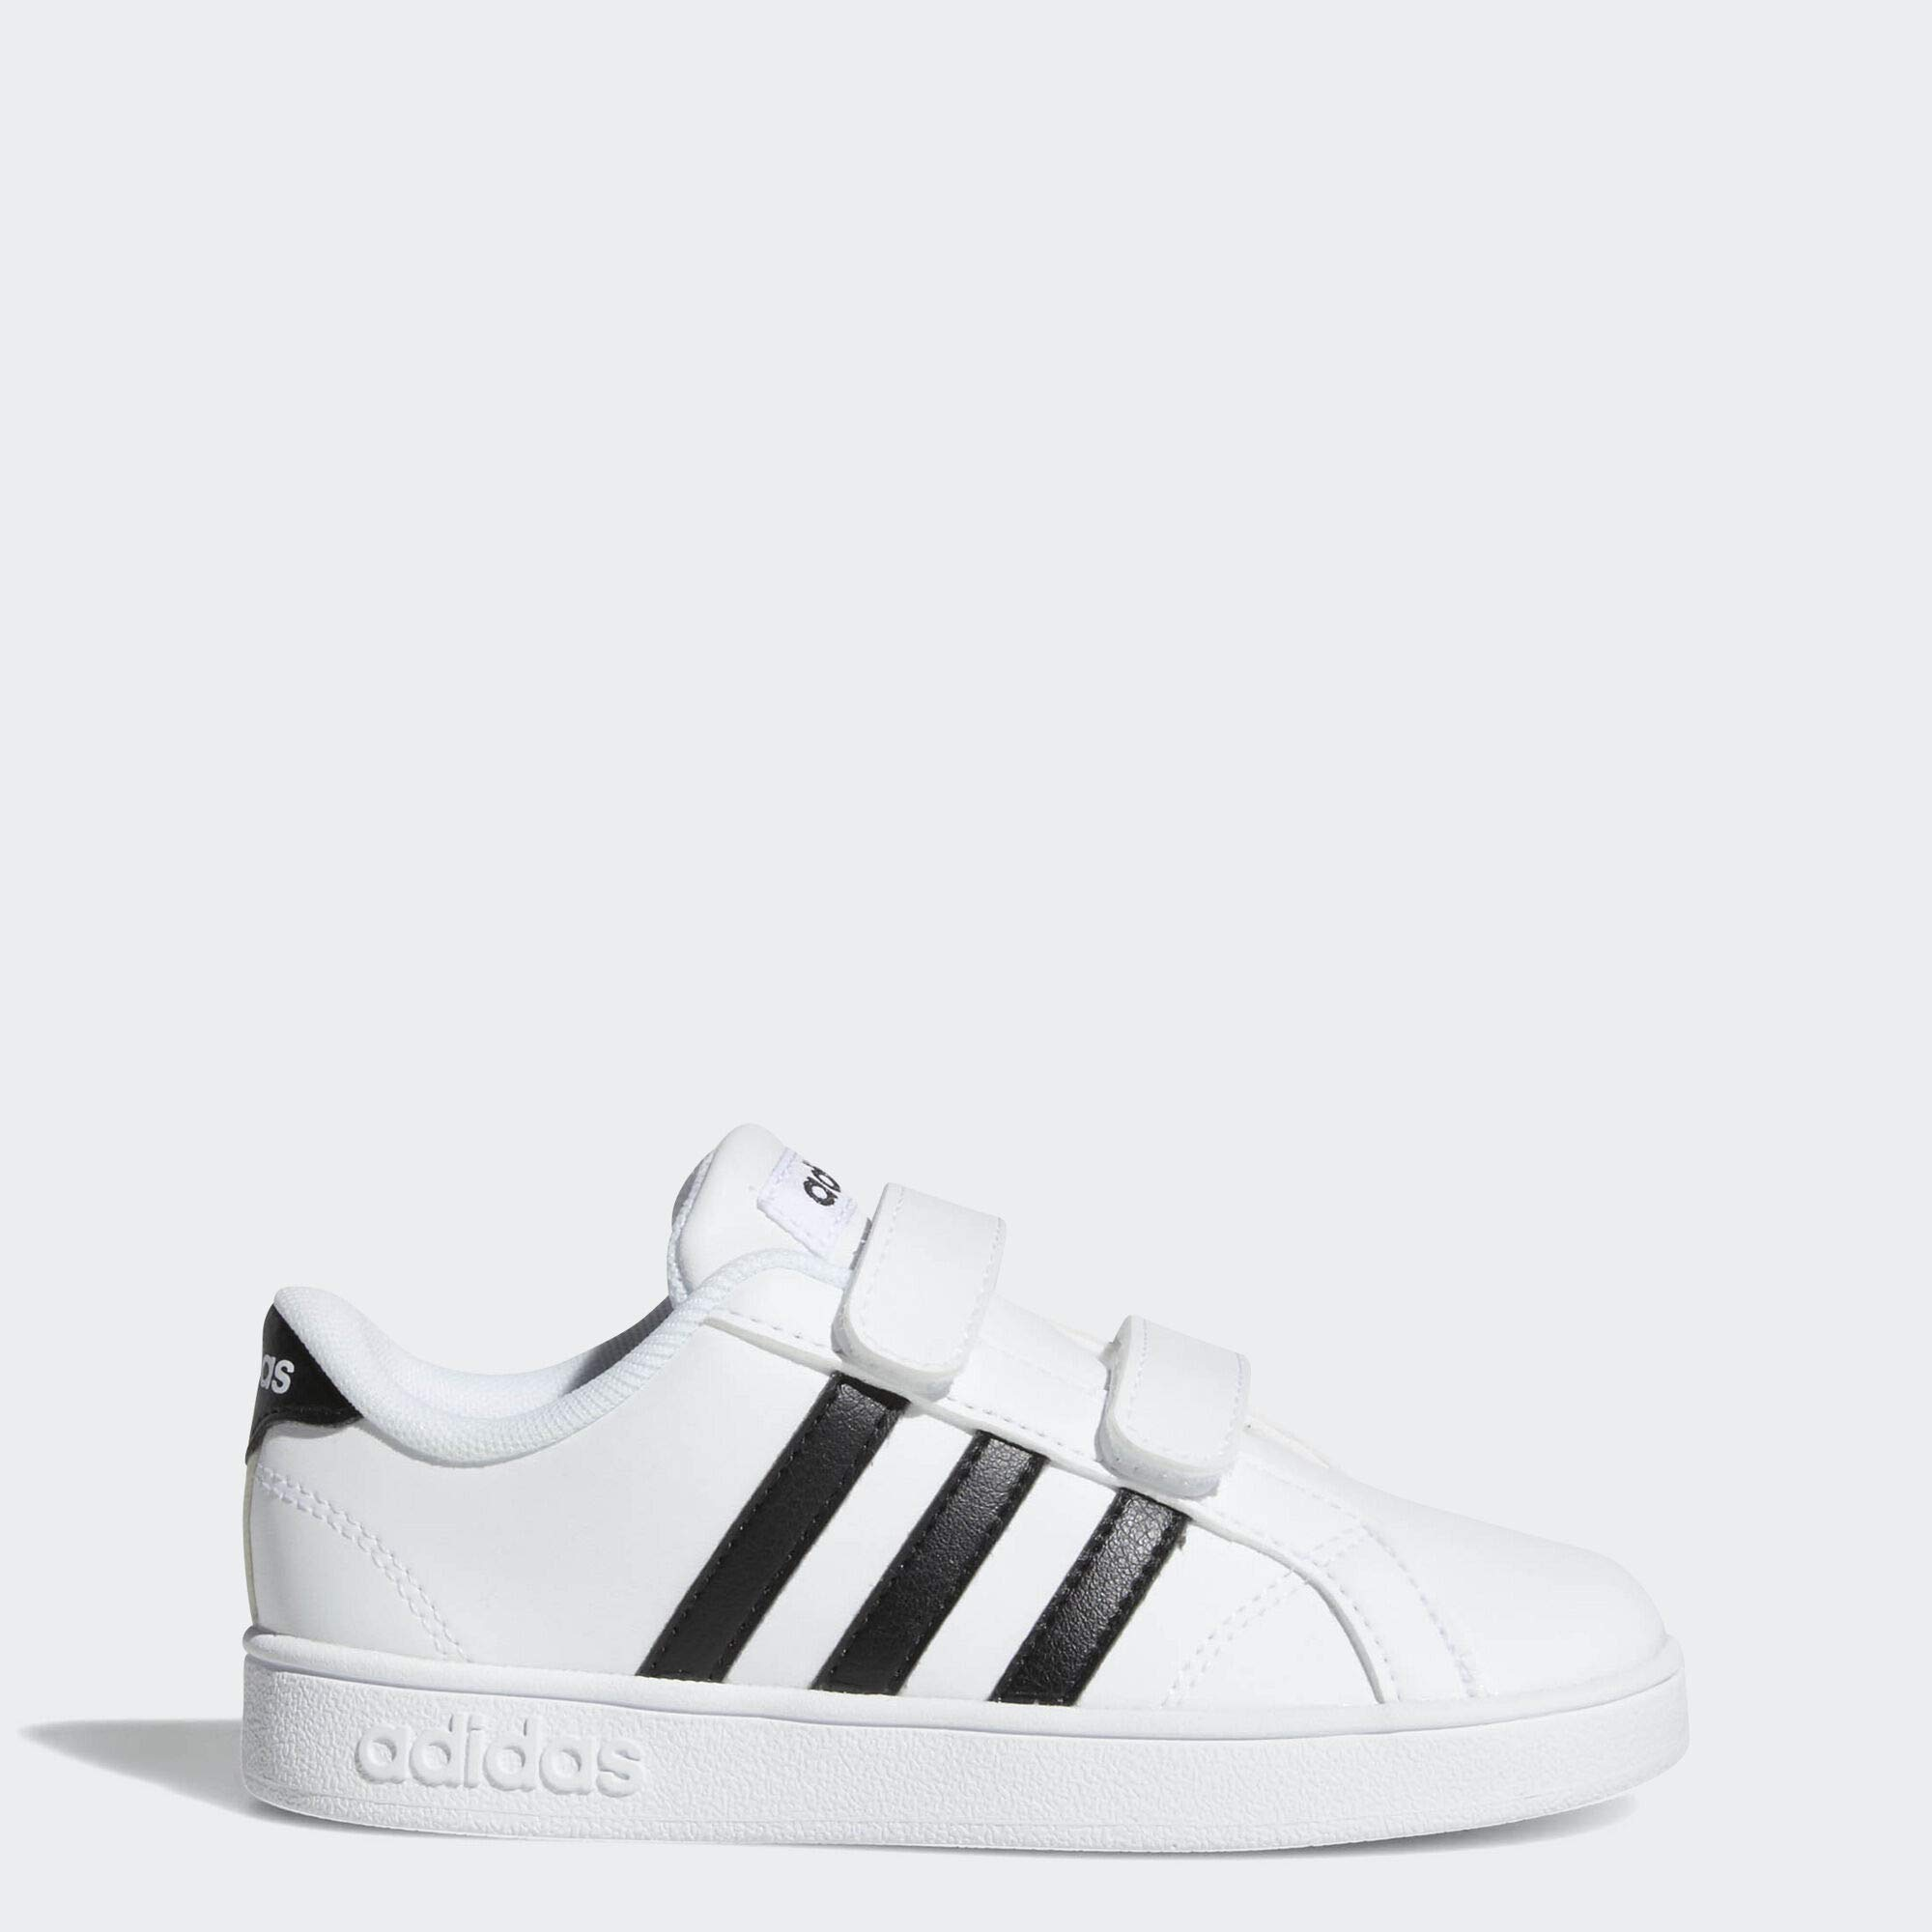 adidas Performance Baby Baseline Sneaker, White/Black/White, 8.5K M US Toddler by adidas